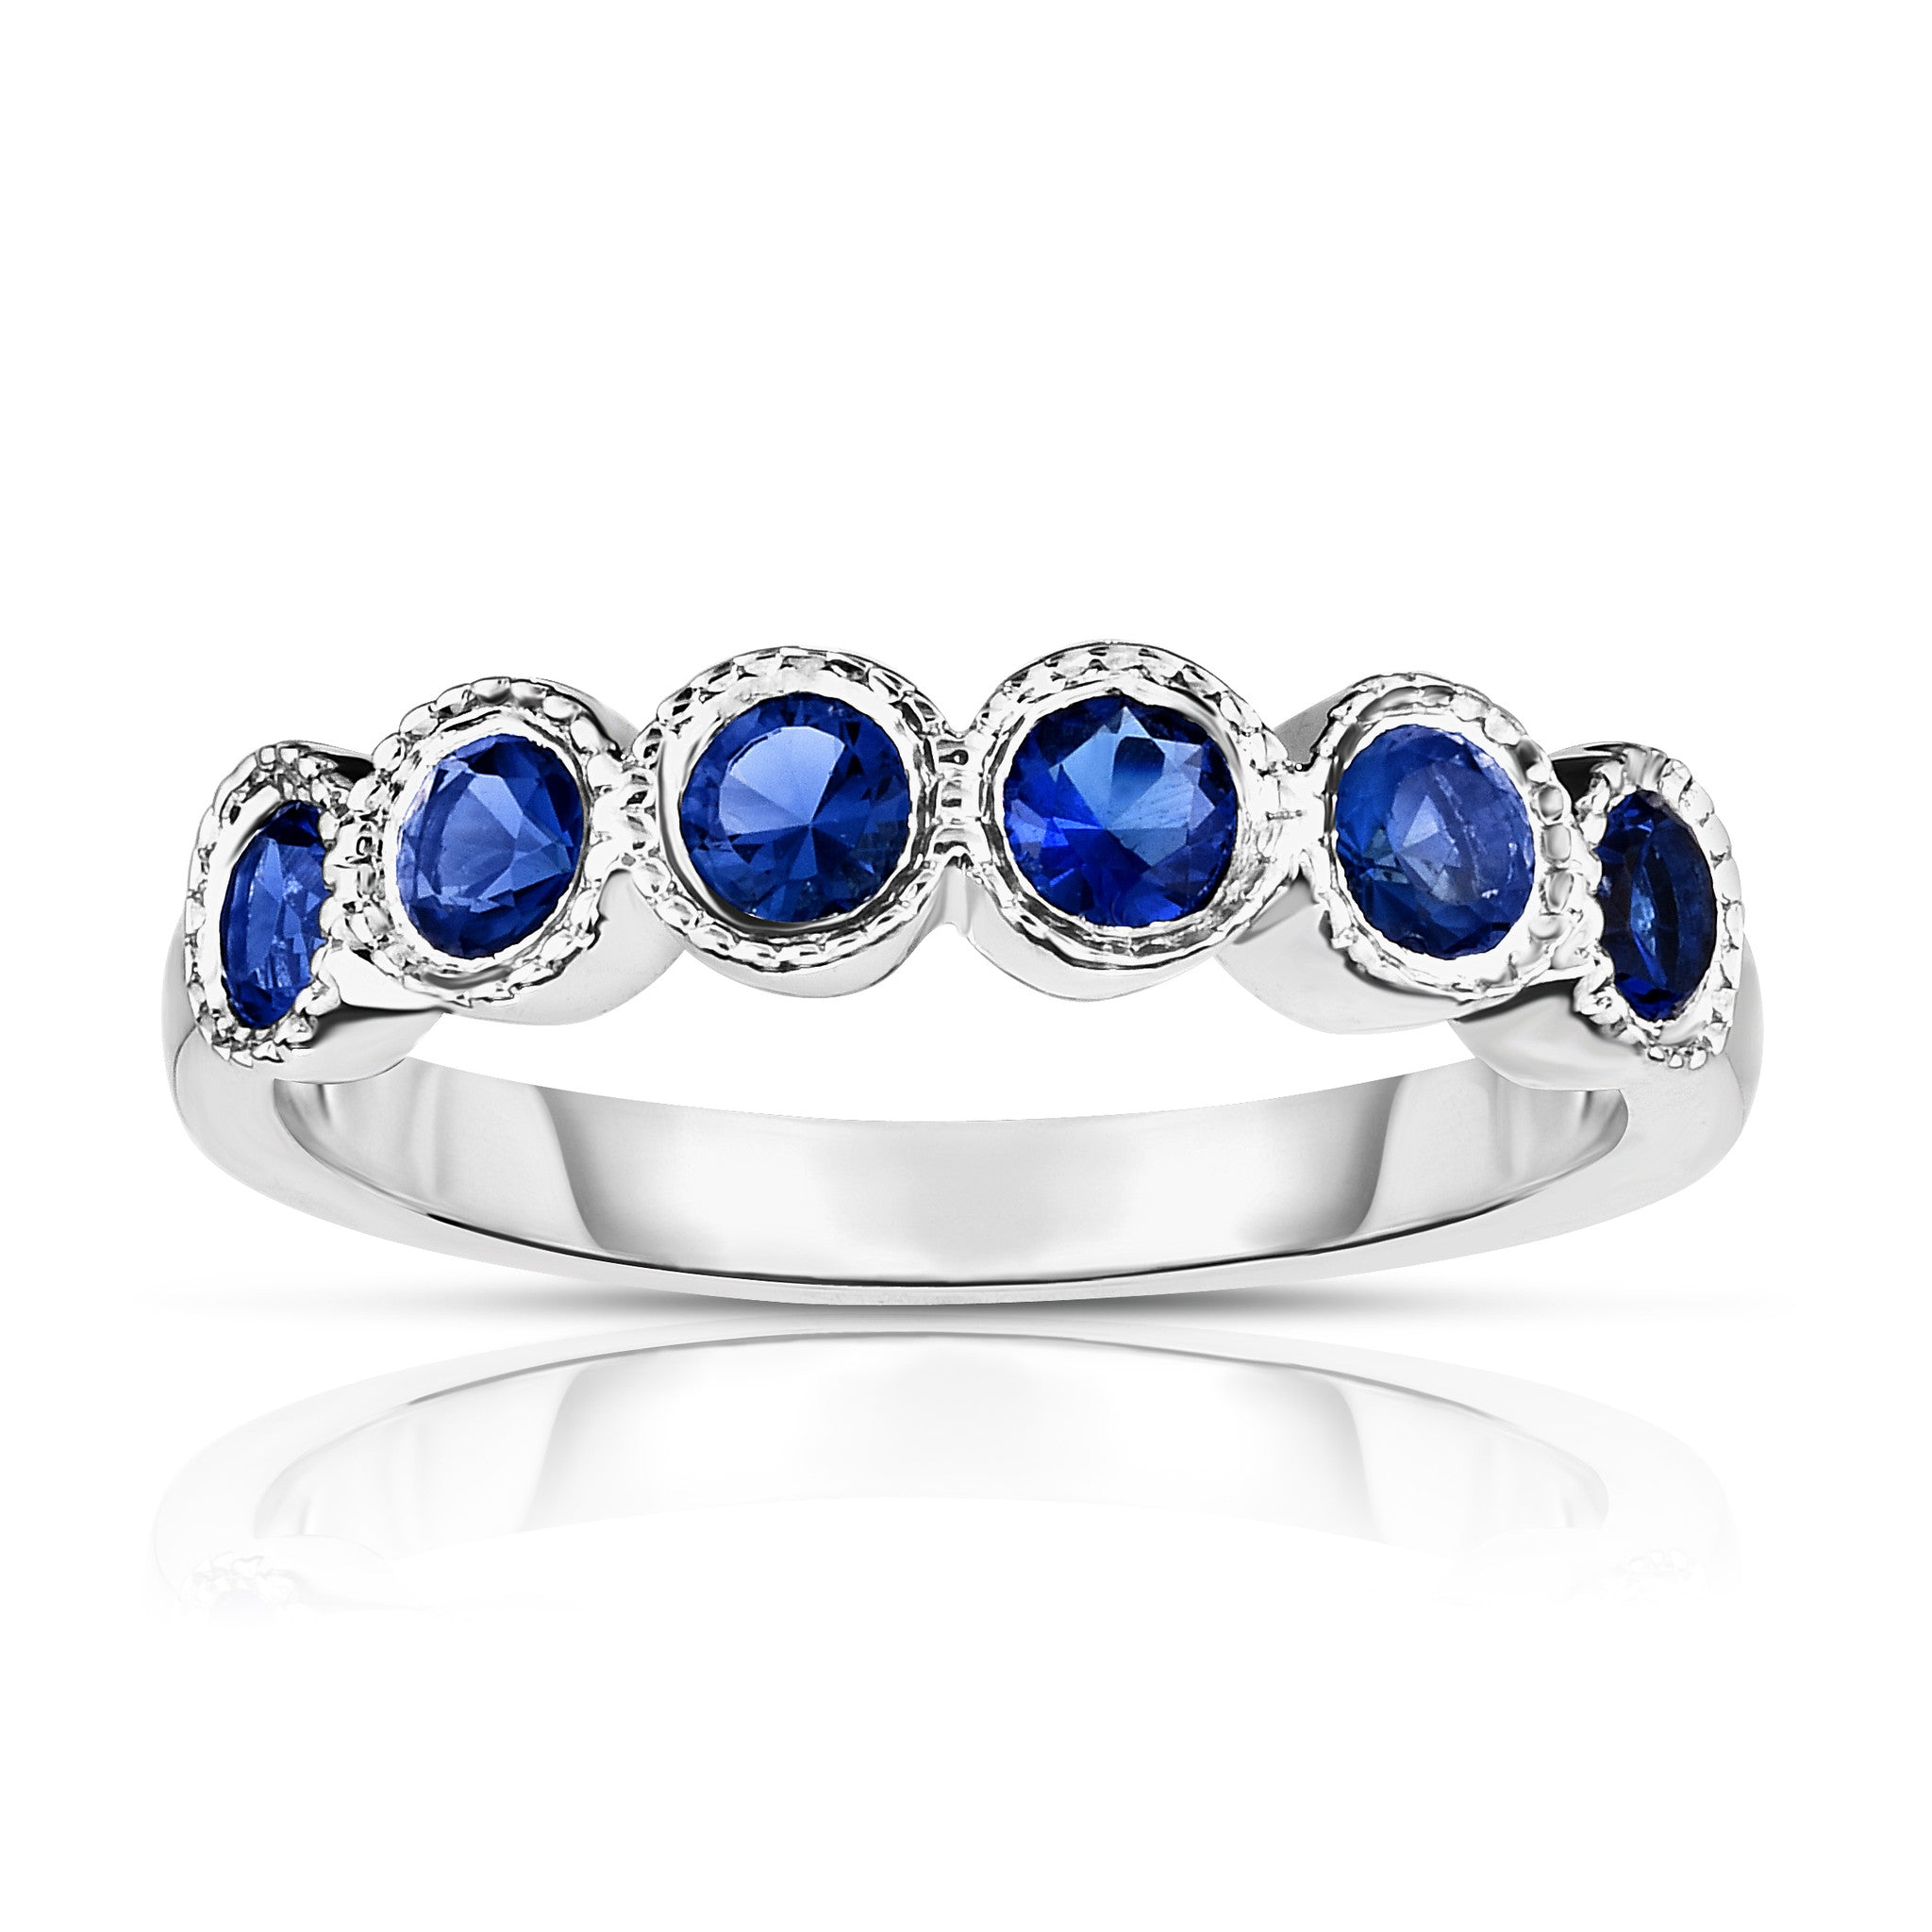 for ring the x gemstones mm setting diamonds stone platinum blue ct three round best your rings stones unheated in article a engagement international contemporary colored sapphire side